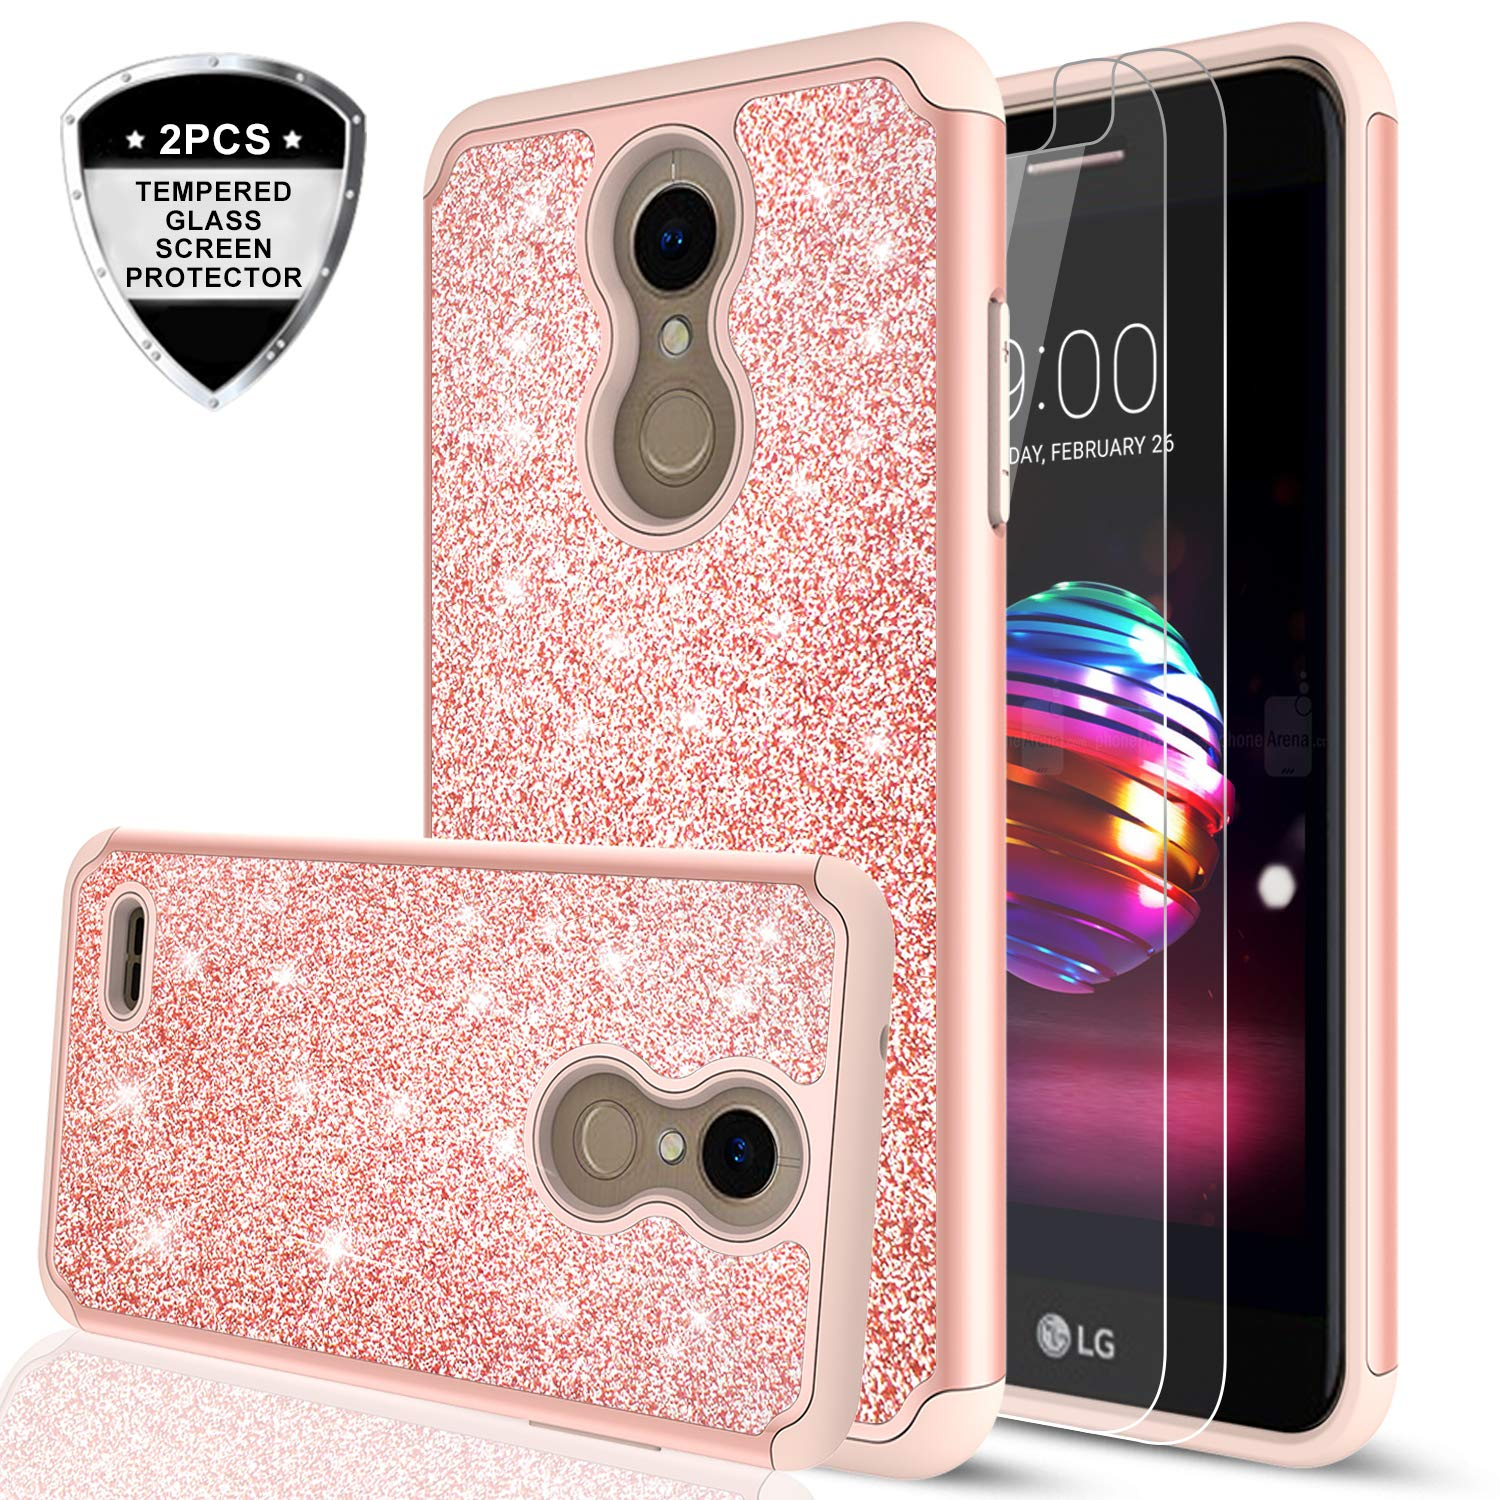 LG K30 /LG Premier Pro LTE/ LG Harmony 2/ LG Phoenix Plus Case with  Tempered Glass Screen Protector [2 Pack] for Girls Women,LeYi Glitter Dual  Layer